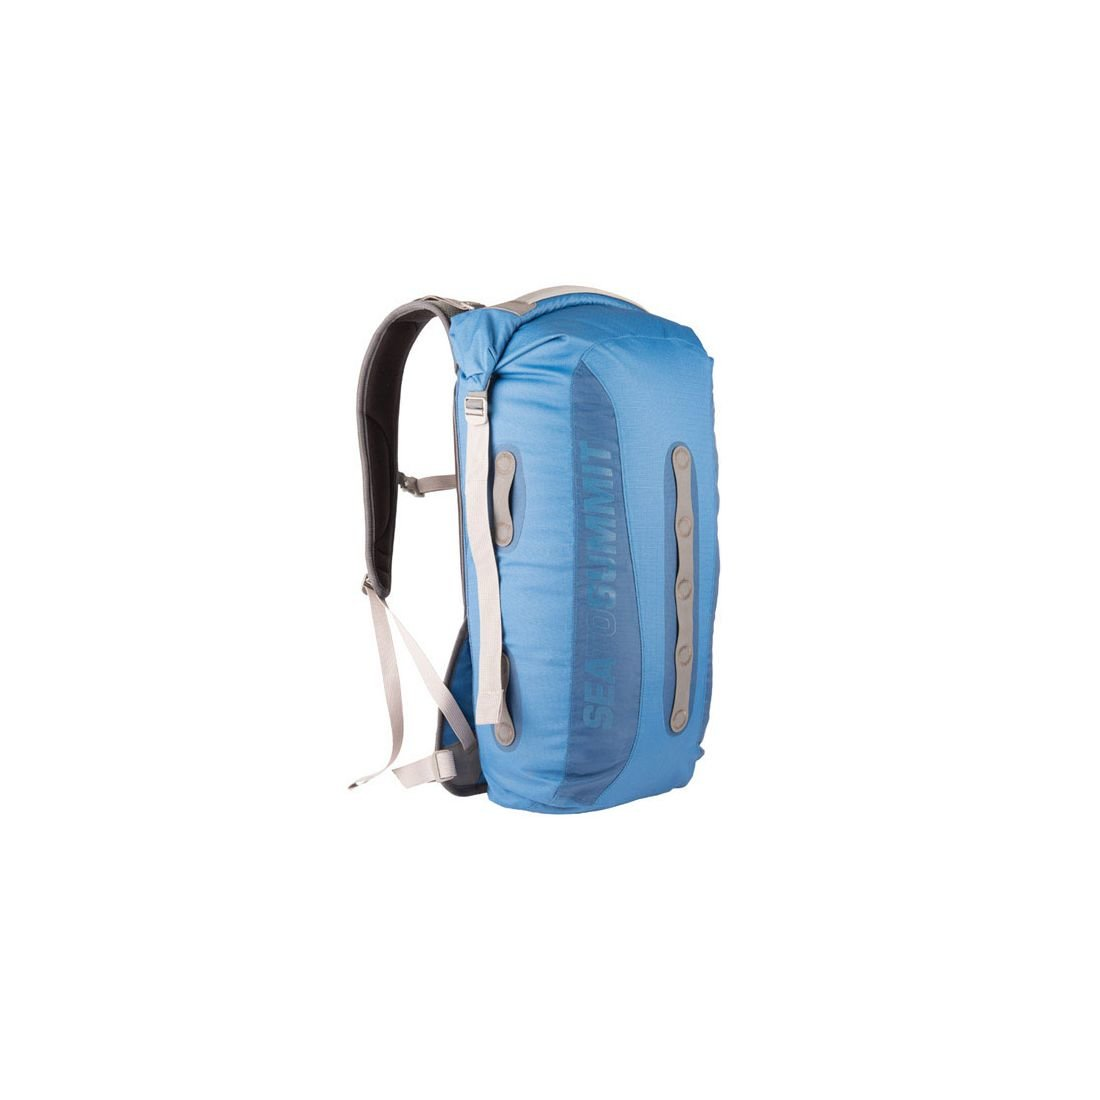 Рюкзак Sea to Summit Carve DryPack 24 L (Yellow) Carve DryPack 24 L 4